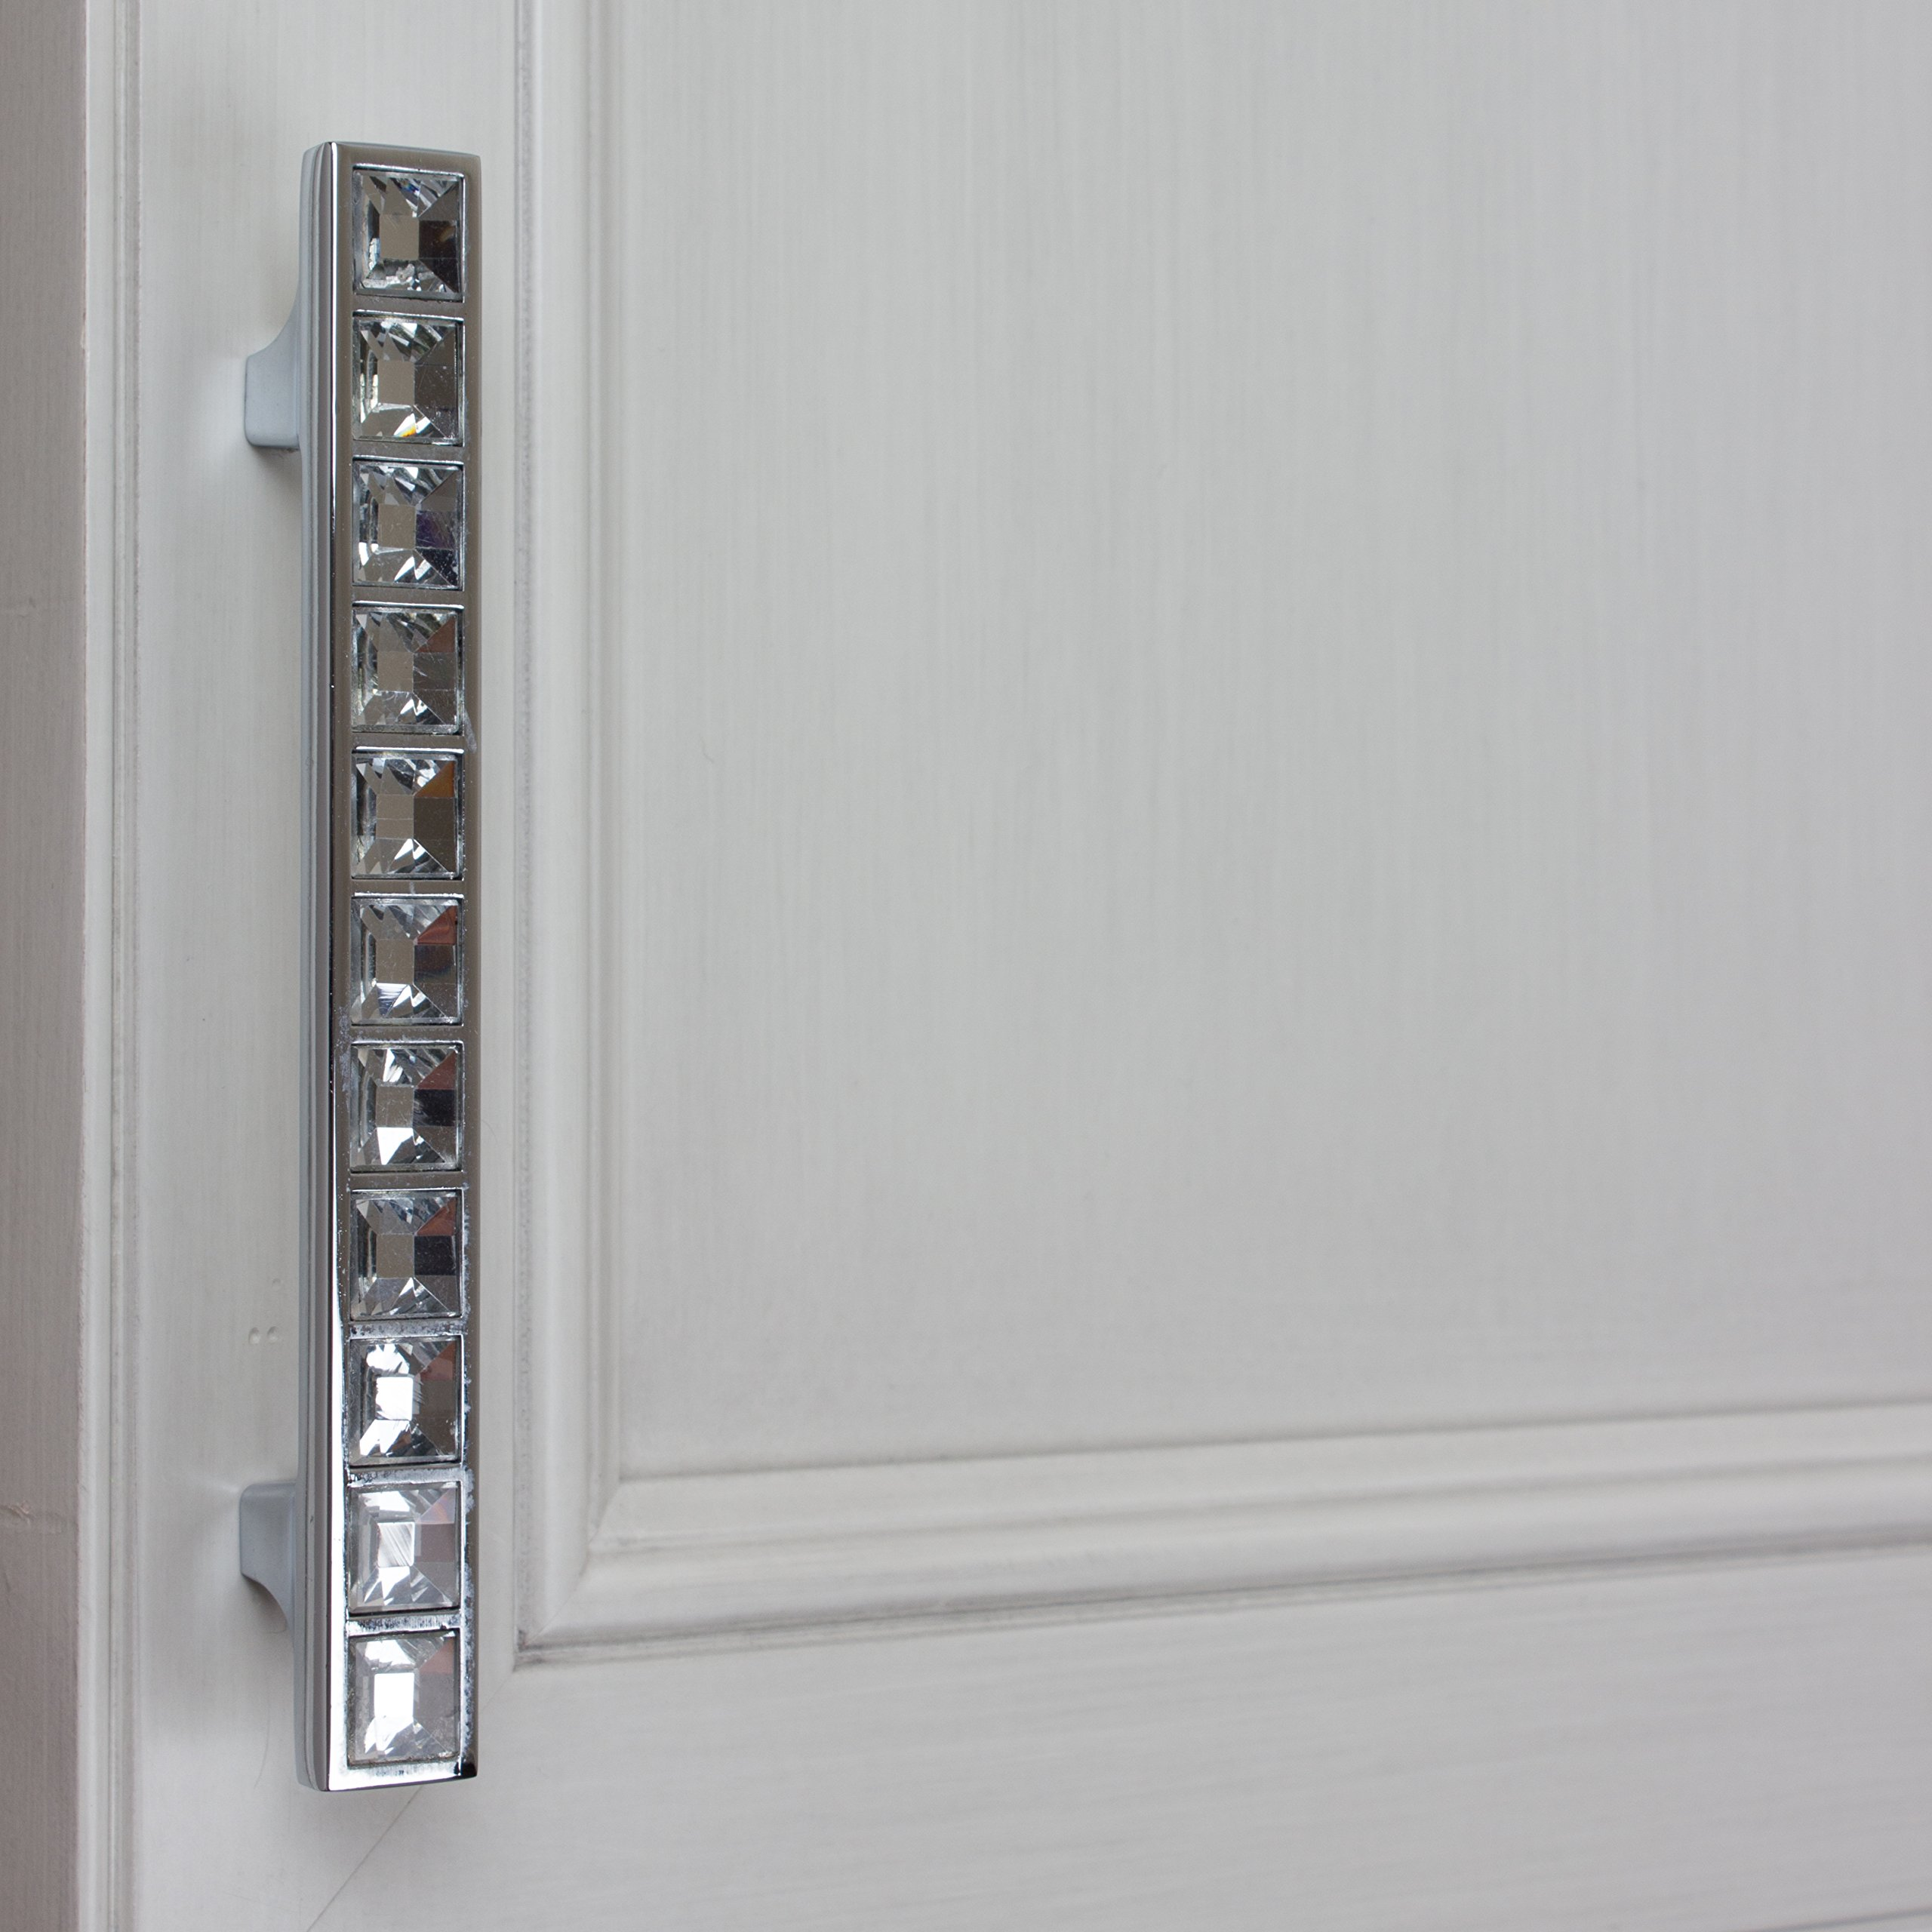 GlideRite Hardware 9052-96-CR-50 3.75'' CC K9 Crystal Cabinet Pulls, 50 Pack, Small, Clear by GlideRite Hardware (Image #5)